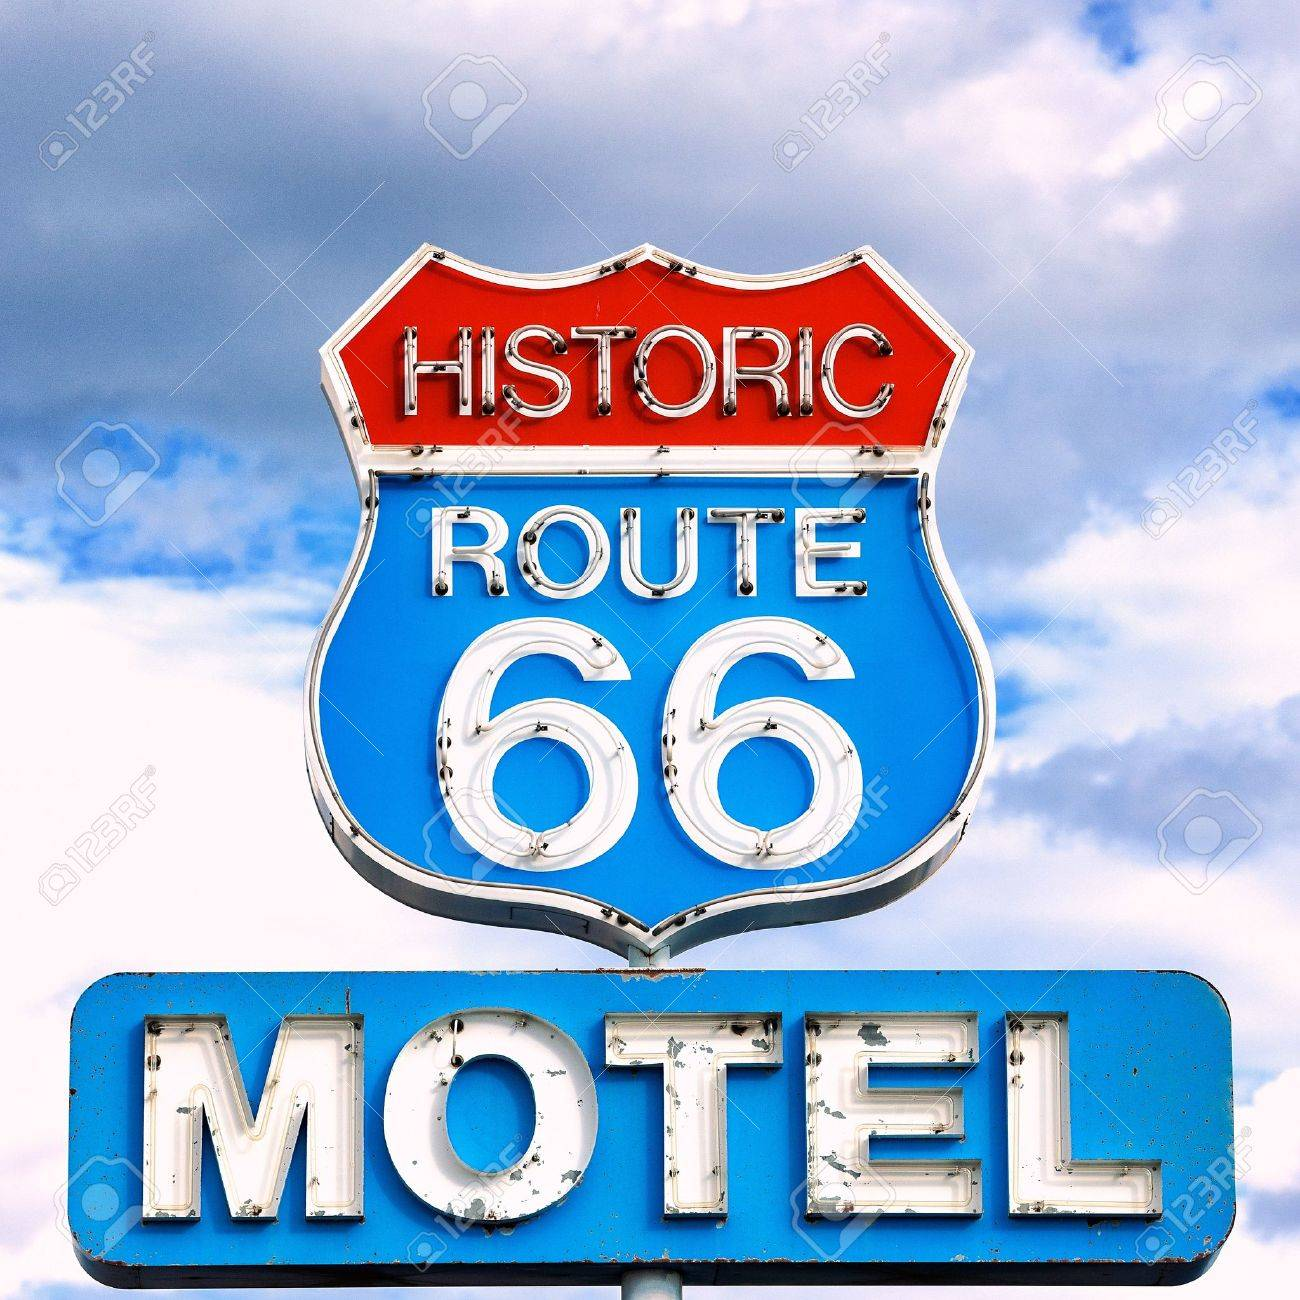 Road Trip Usa Images  Stock Pictures Royalty Free Road Trip Usa - Road trip route 66 usa